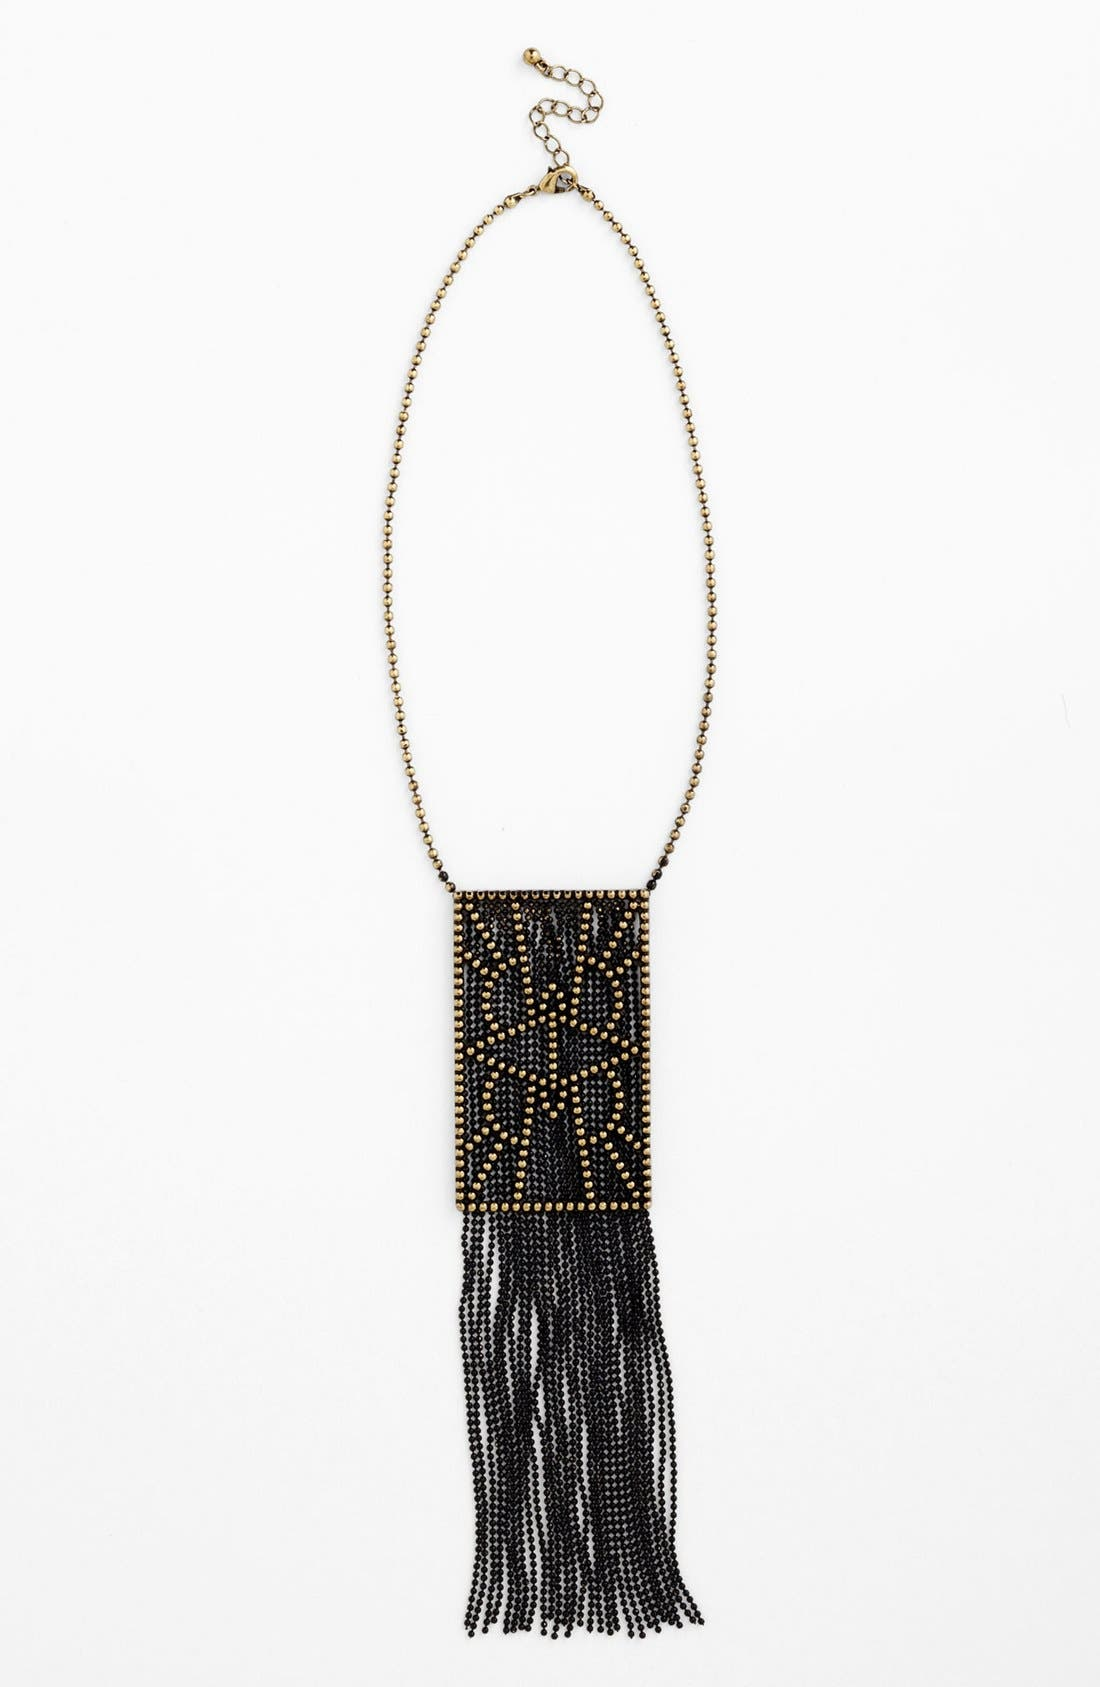 Alternate Image 1 Selected - Carbon Copy 'Feisty Fringe'  Statement Necklace